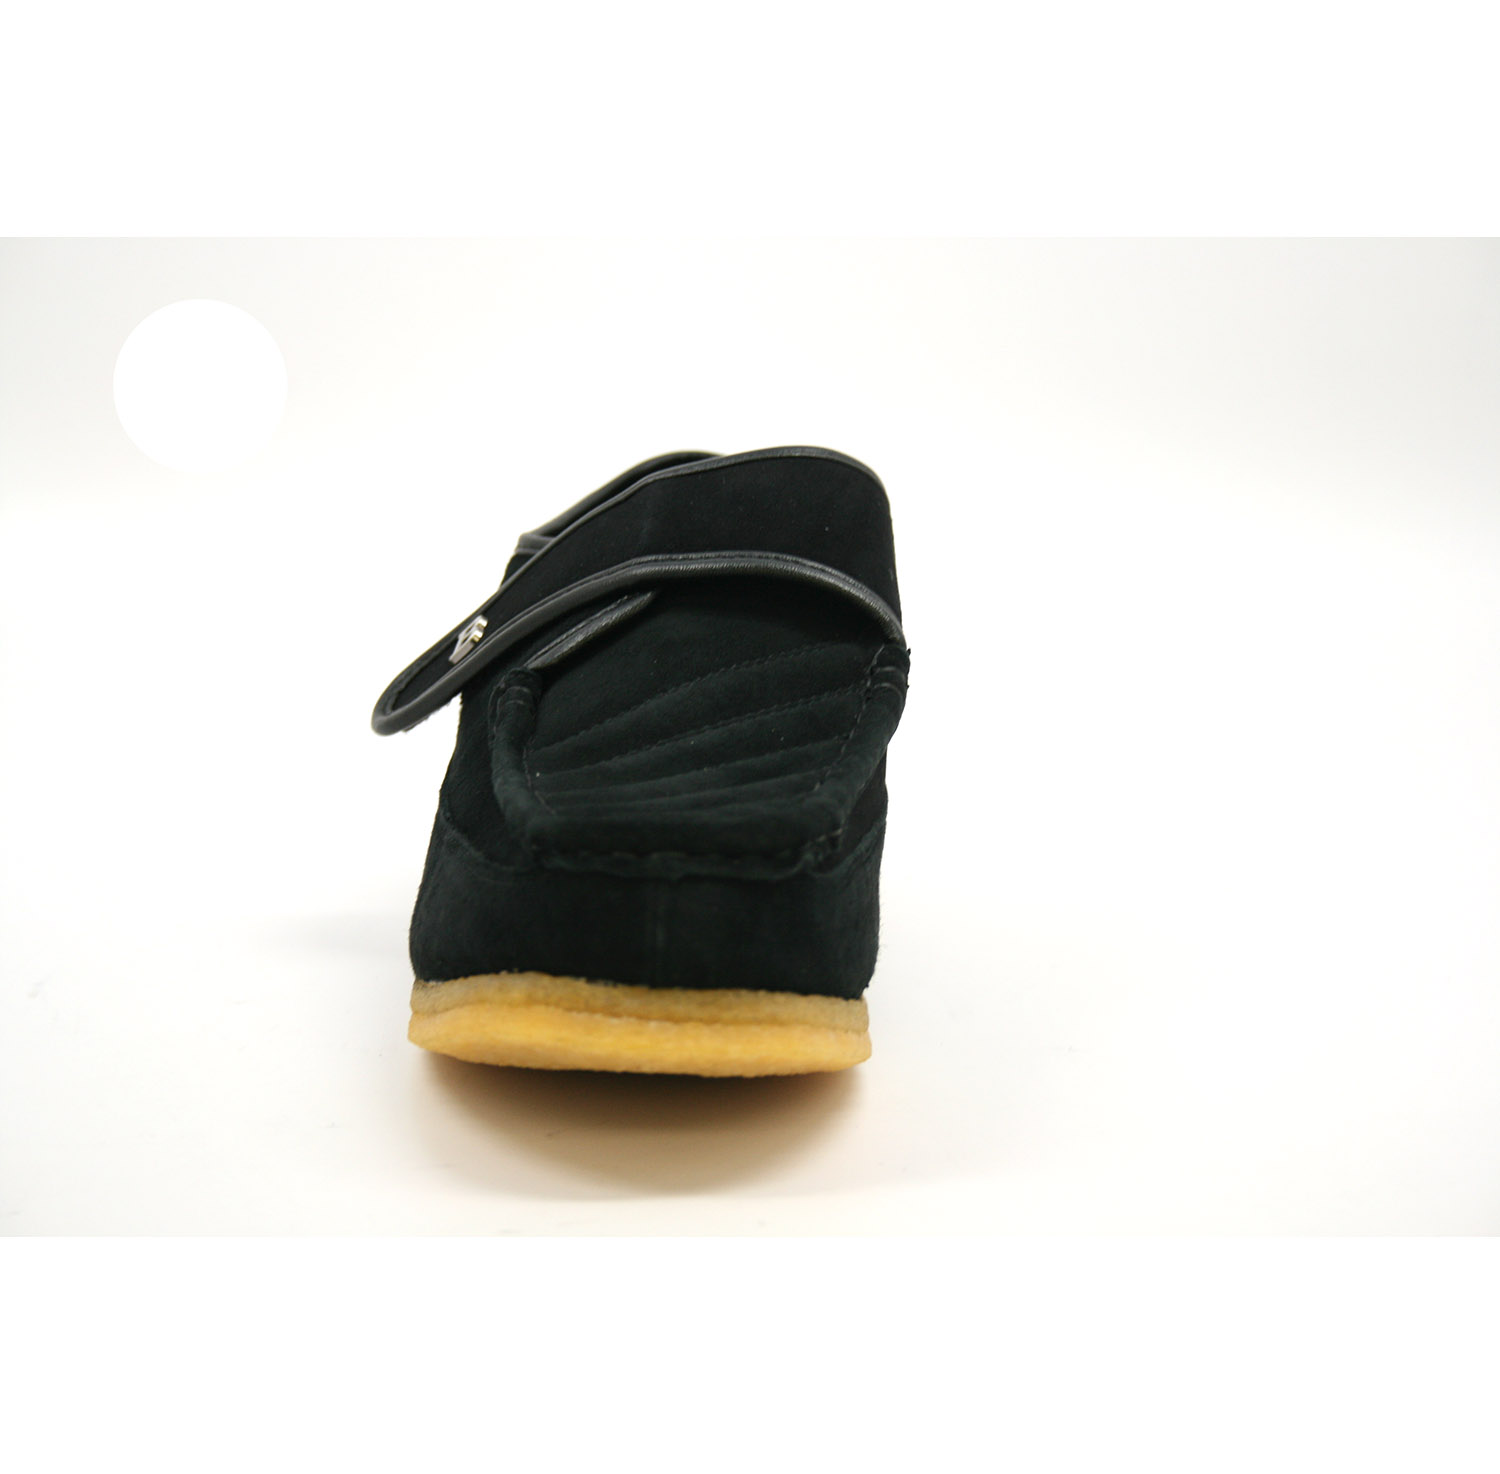 British Collection Royal Old School Slip On Black Suede  126-01 ... a4532c119